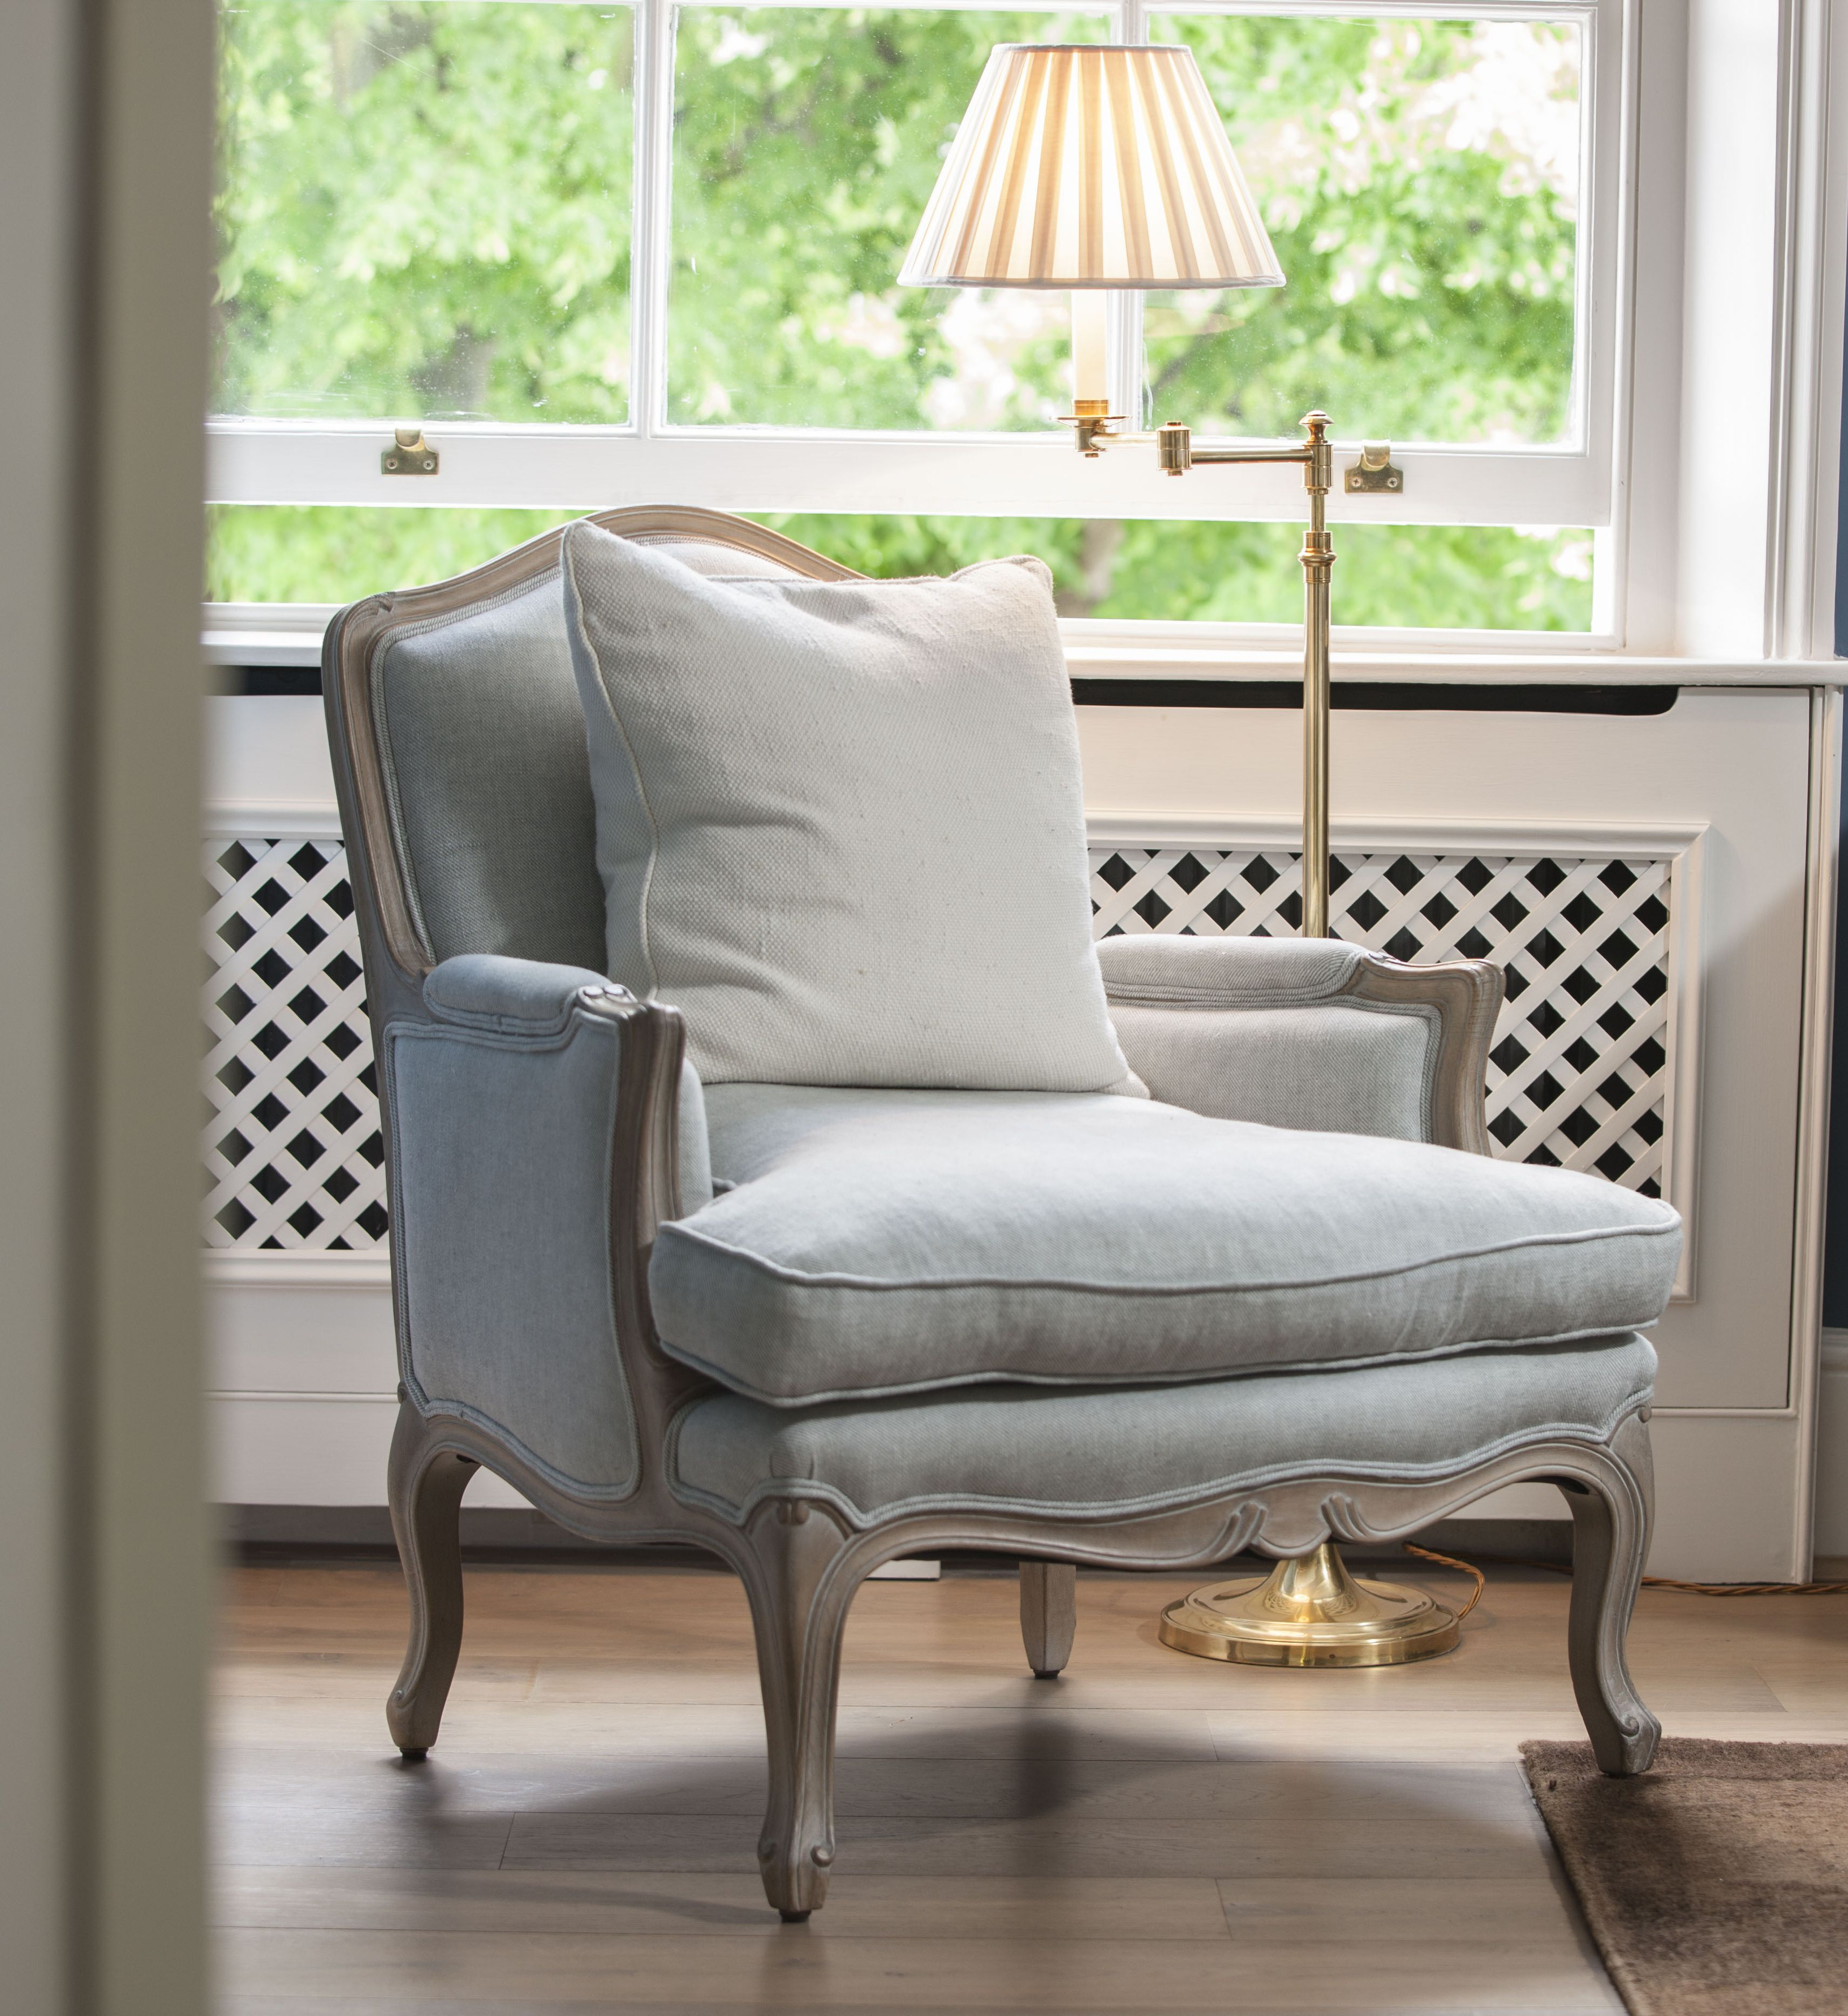 Classic Living Room Chairs Contemporary Furniture Sets Uk In South Kensington My Home Decore Gardening